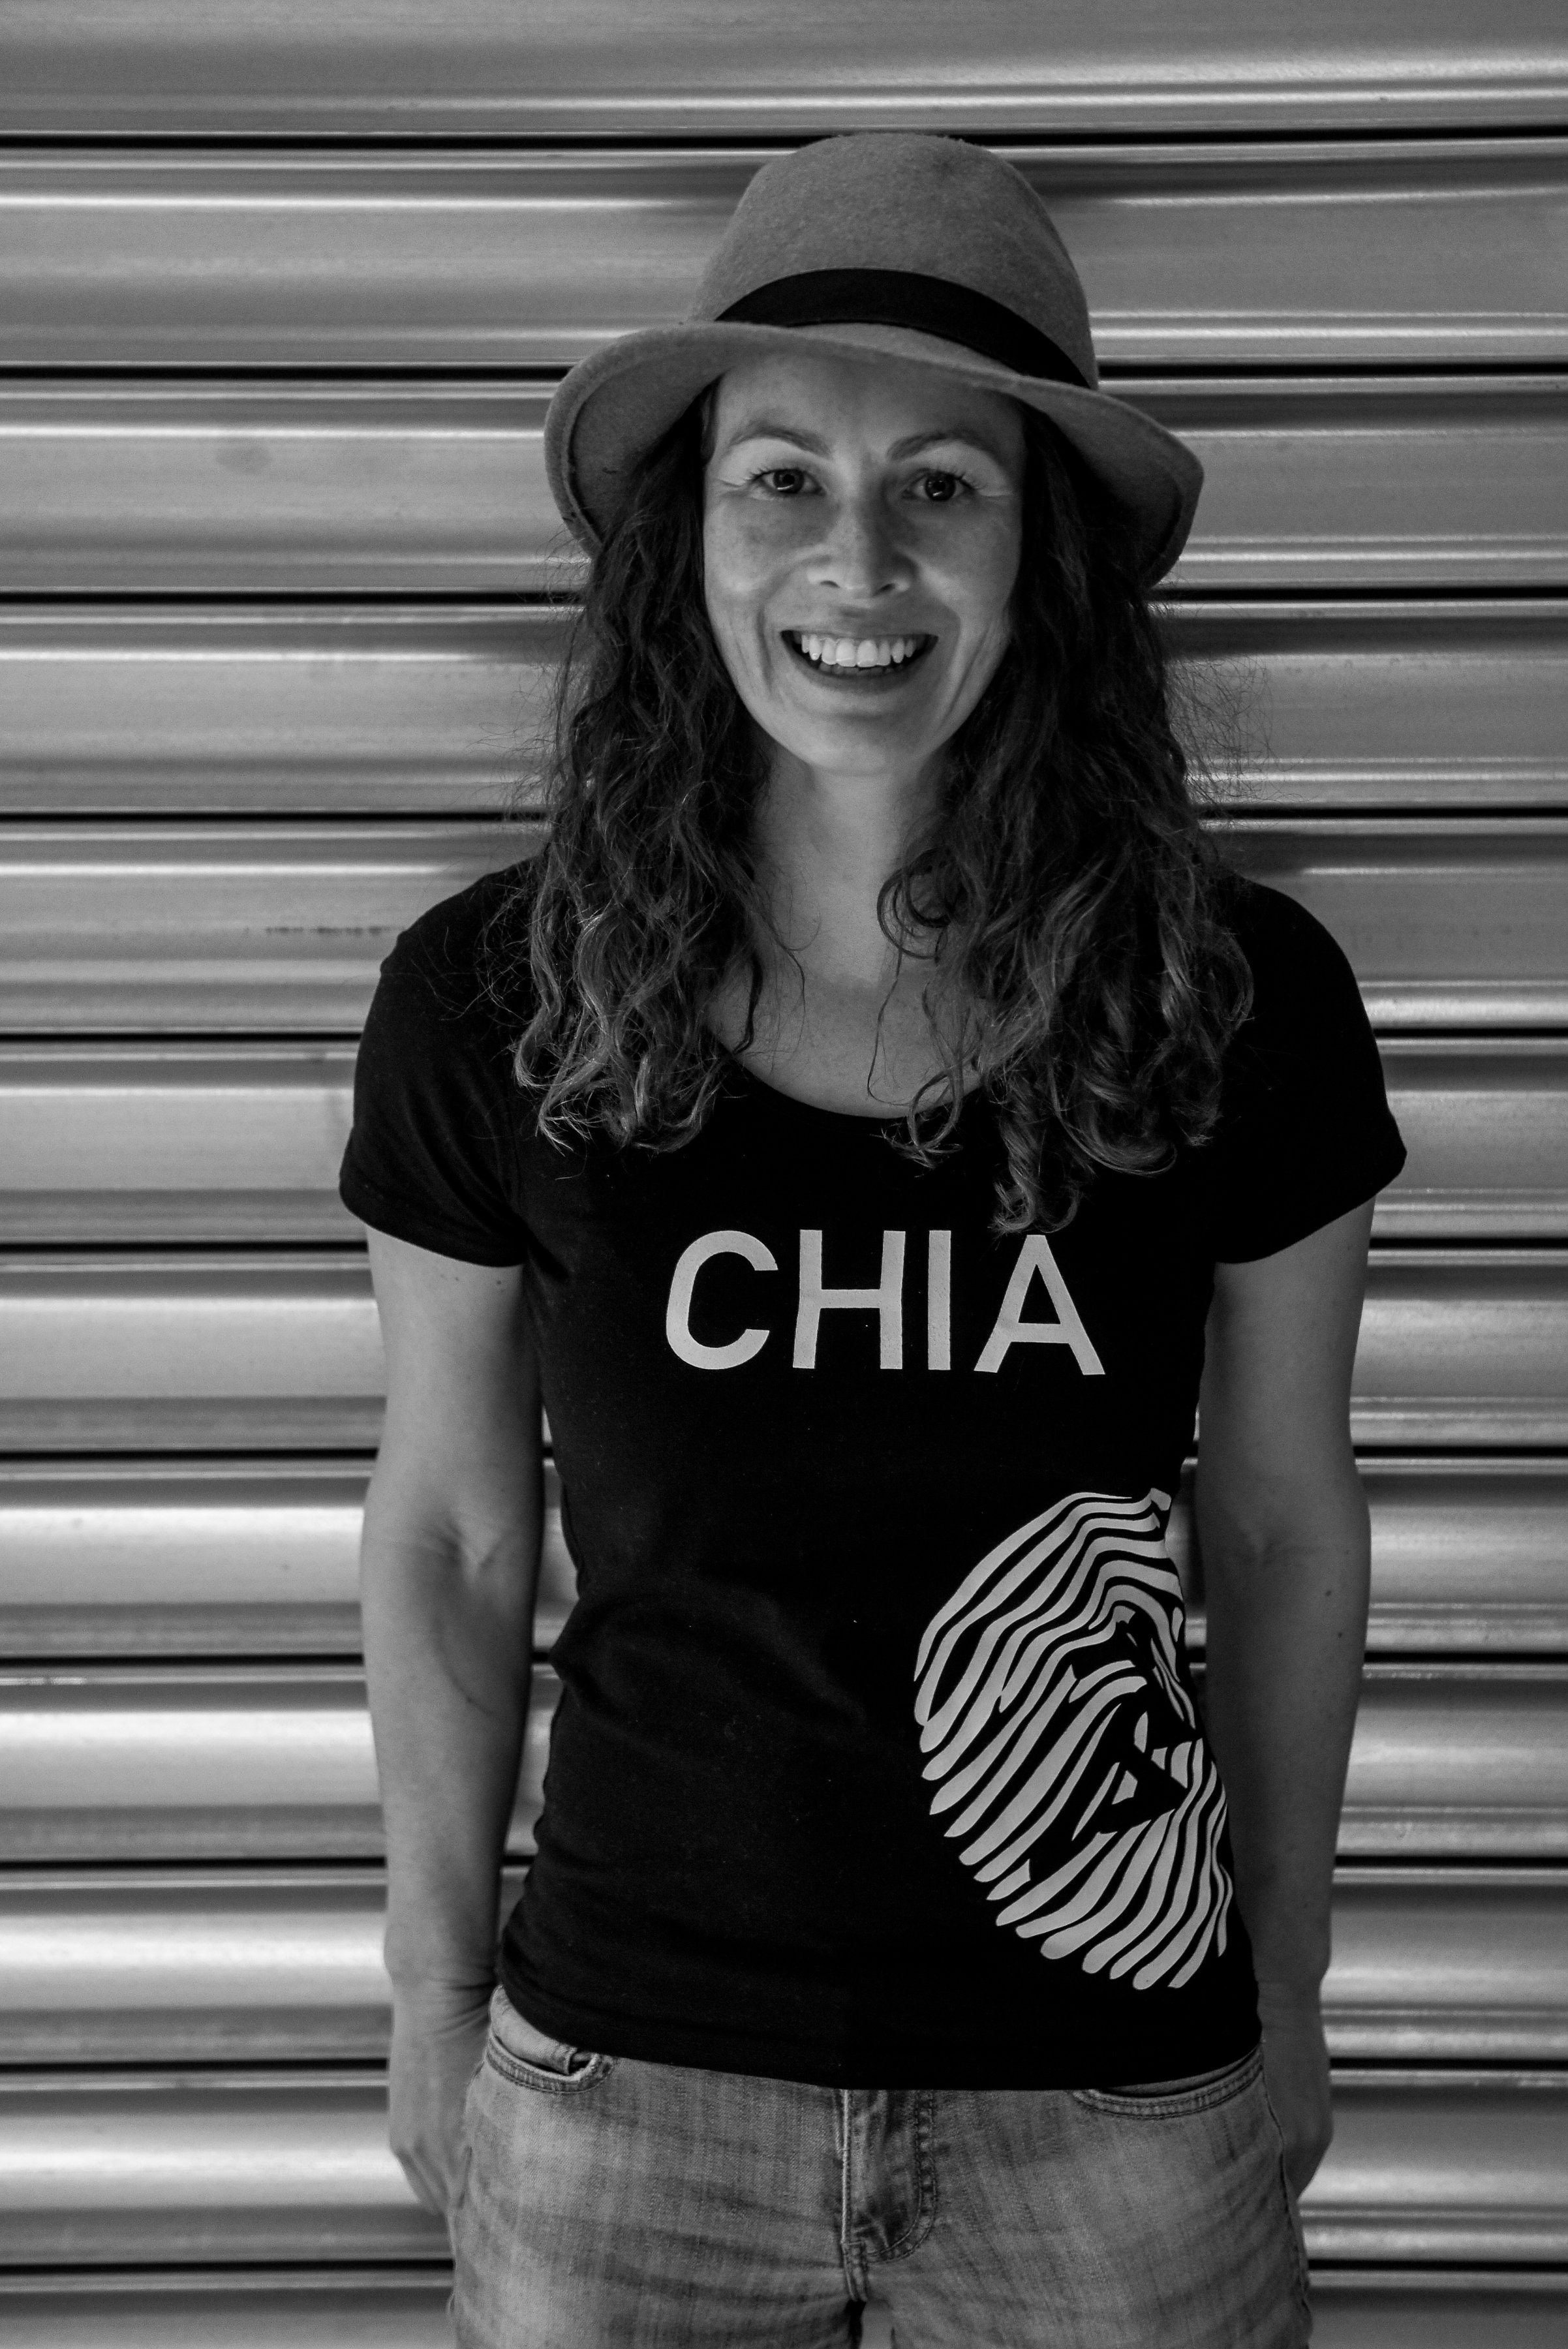 Chloe Van Dyke  I'm the founder of Chia Sisters. My background in Neuroscience and research of the medicinal properties of plants, naturally fostered the desire to make the healthiest, most innovative beverages in the world.  To do this it's my role to surround myself with people who are more intelligent and can get the job done better than I ever could.